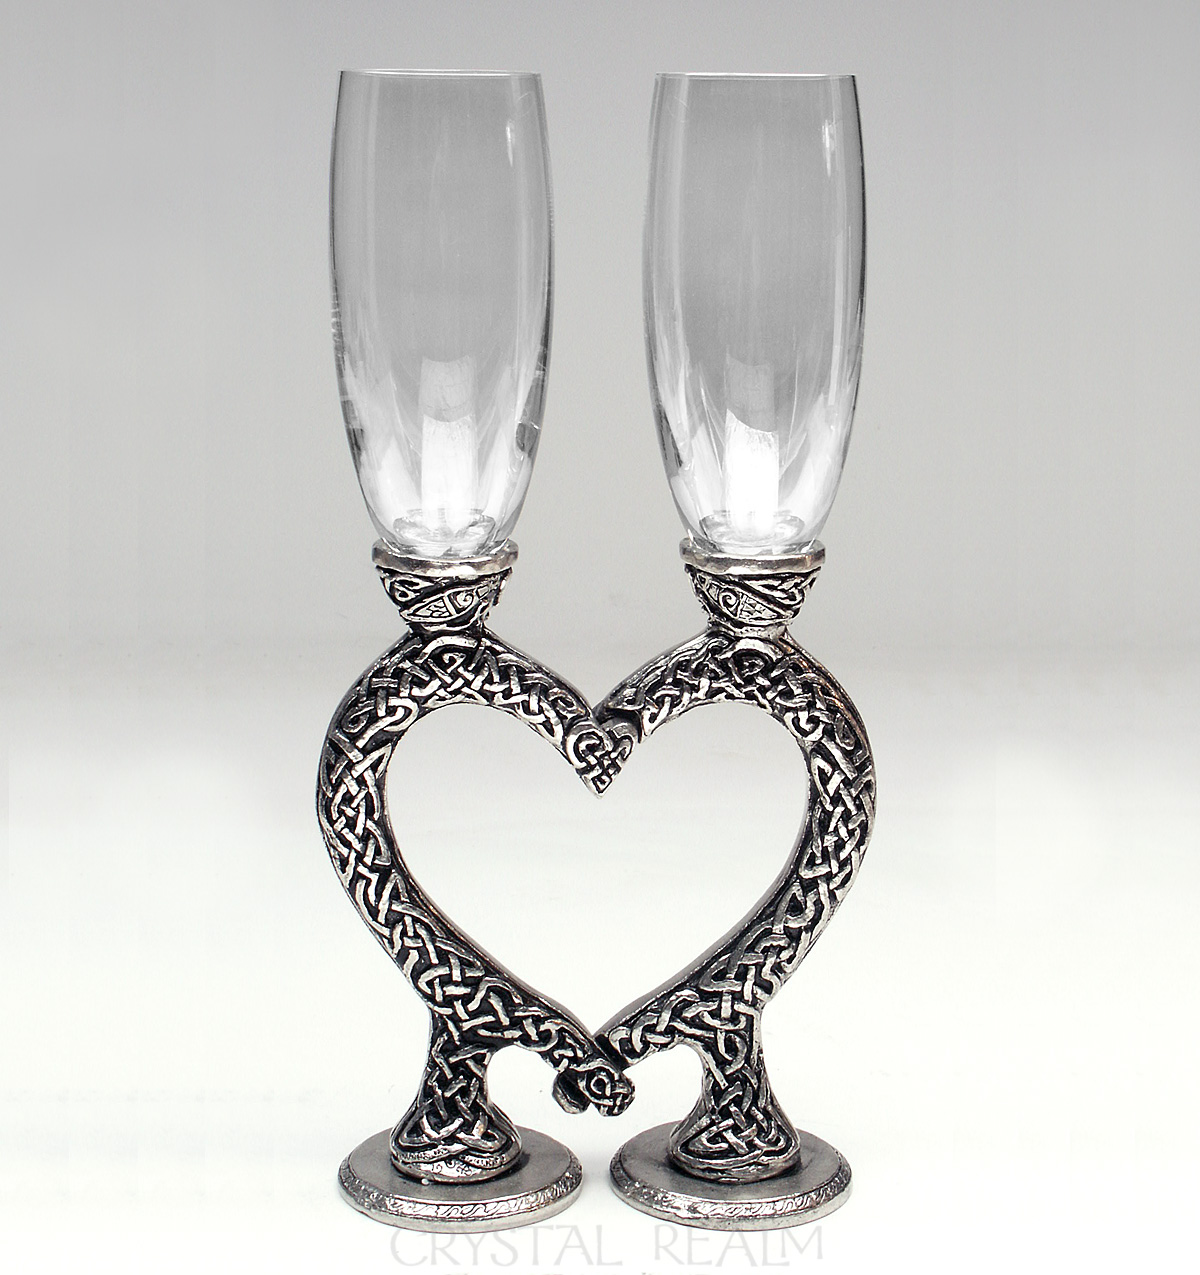 Celtic clear toasting glasses with knotwork heart stems